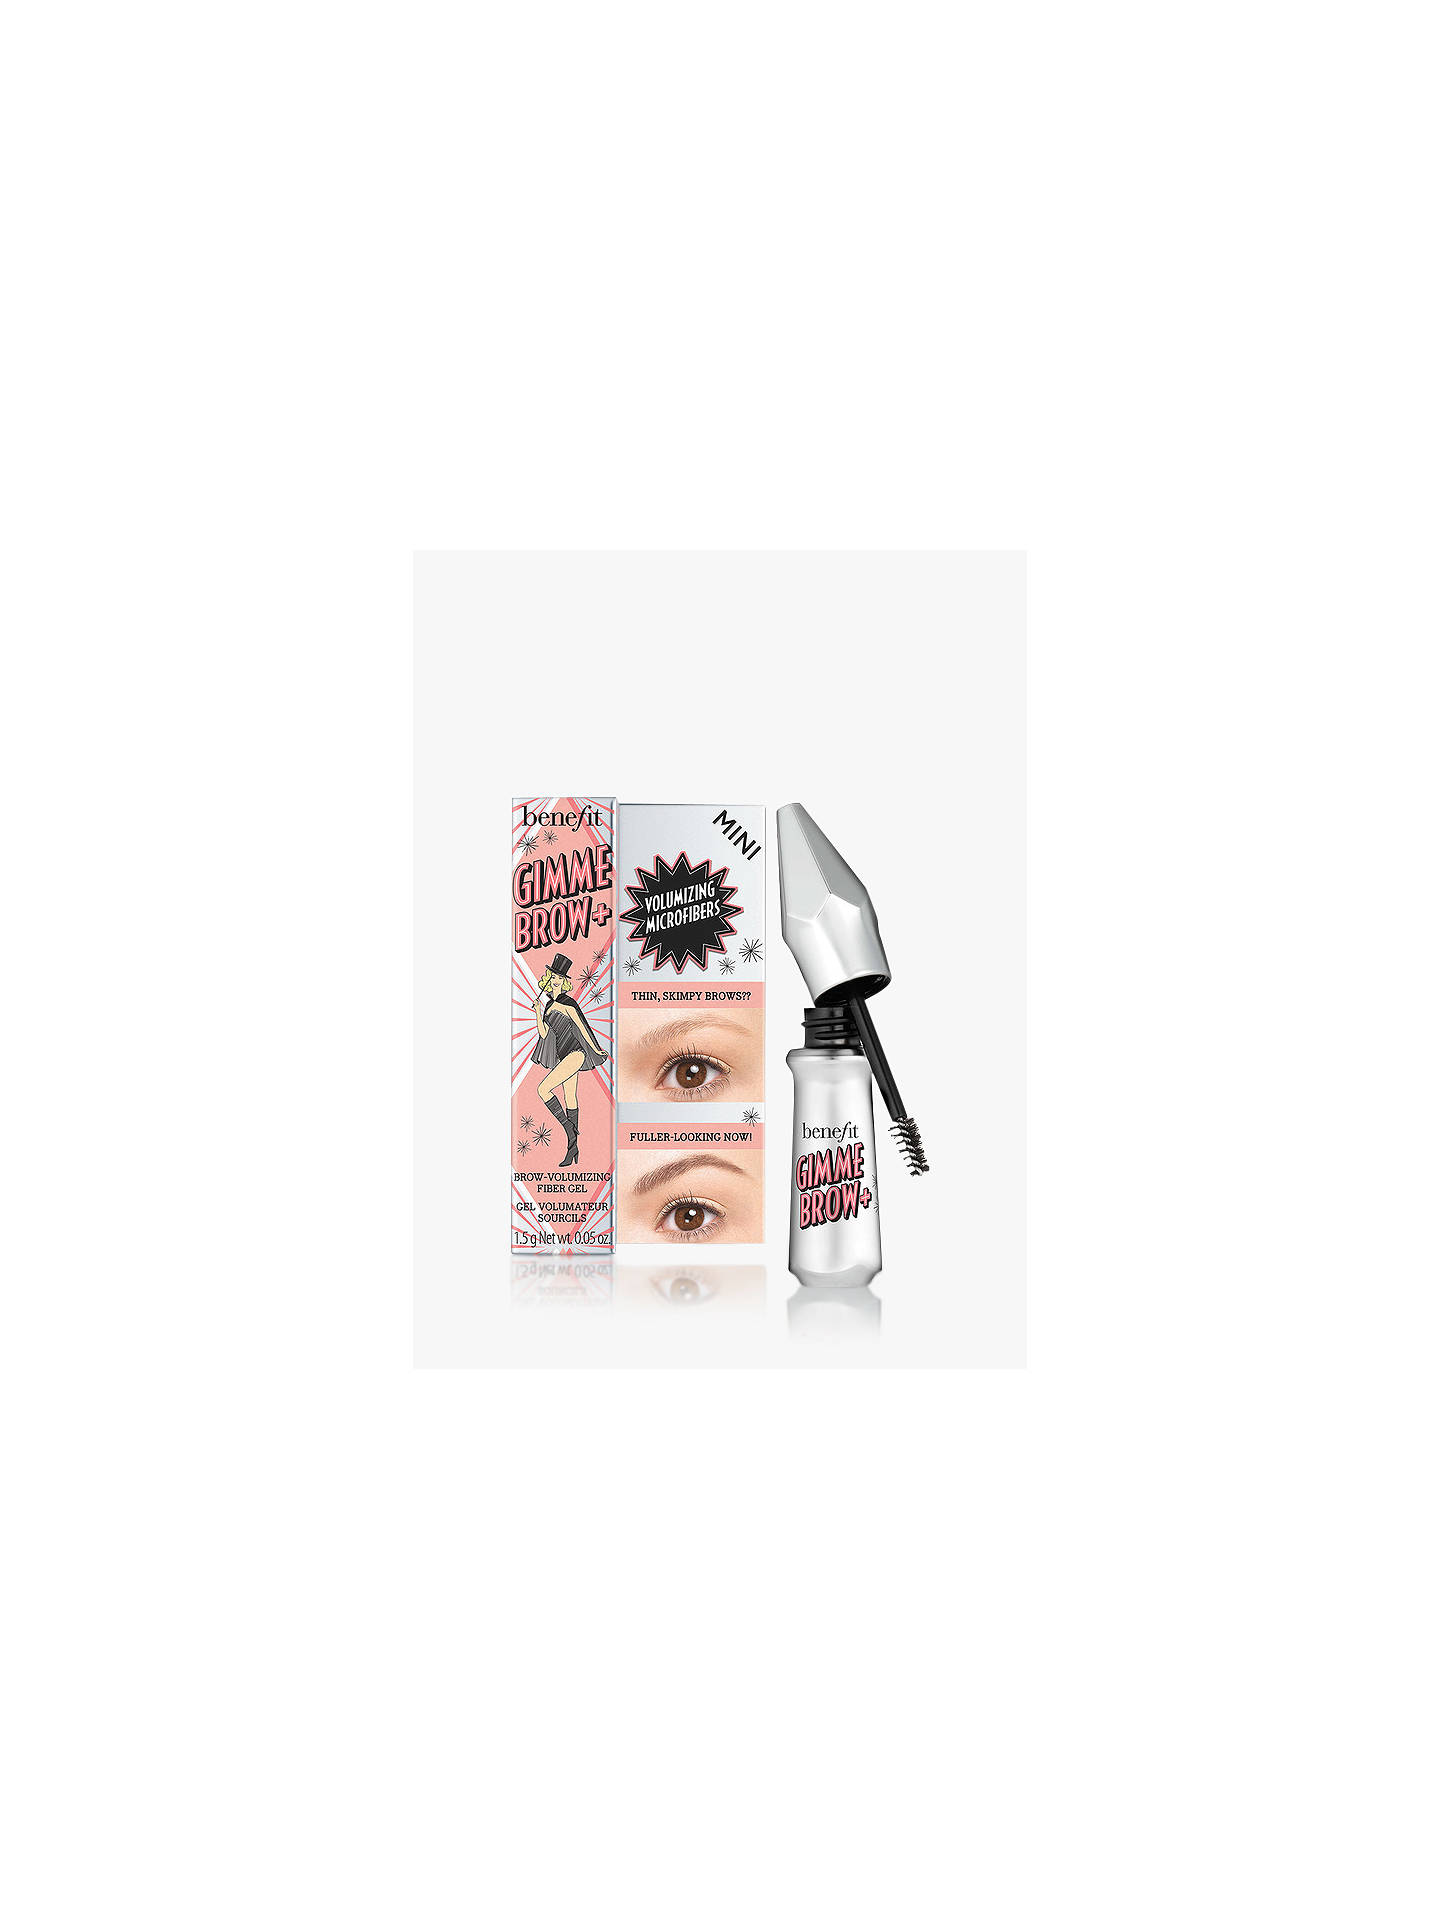 769fba1a1b0 Buy Benefit Gimme Brow+ Volumising Eyebrow Gel Travel Sized Mini, 1 Light  Online at johnlewis ...